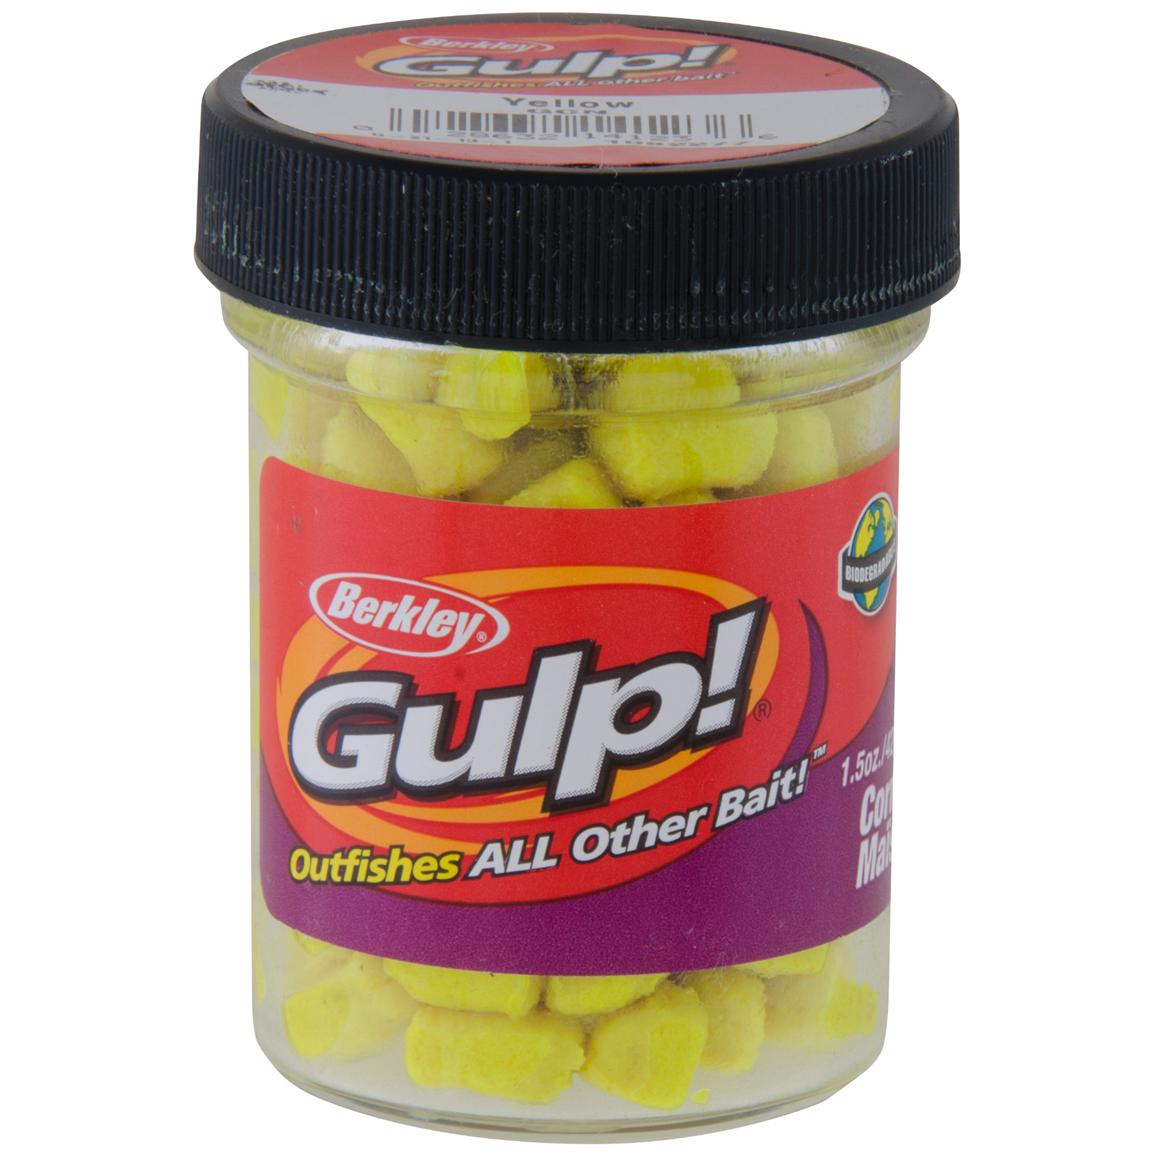 berkley gulp corn bait 1 5 oz jar 425048 soft baits